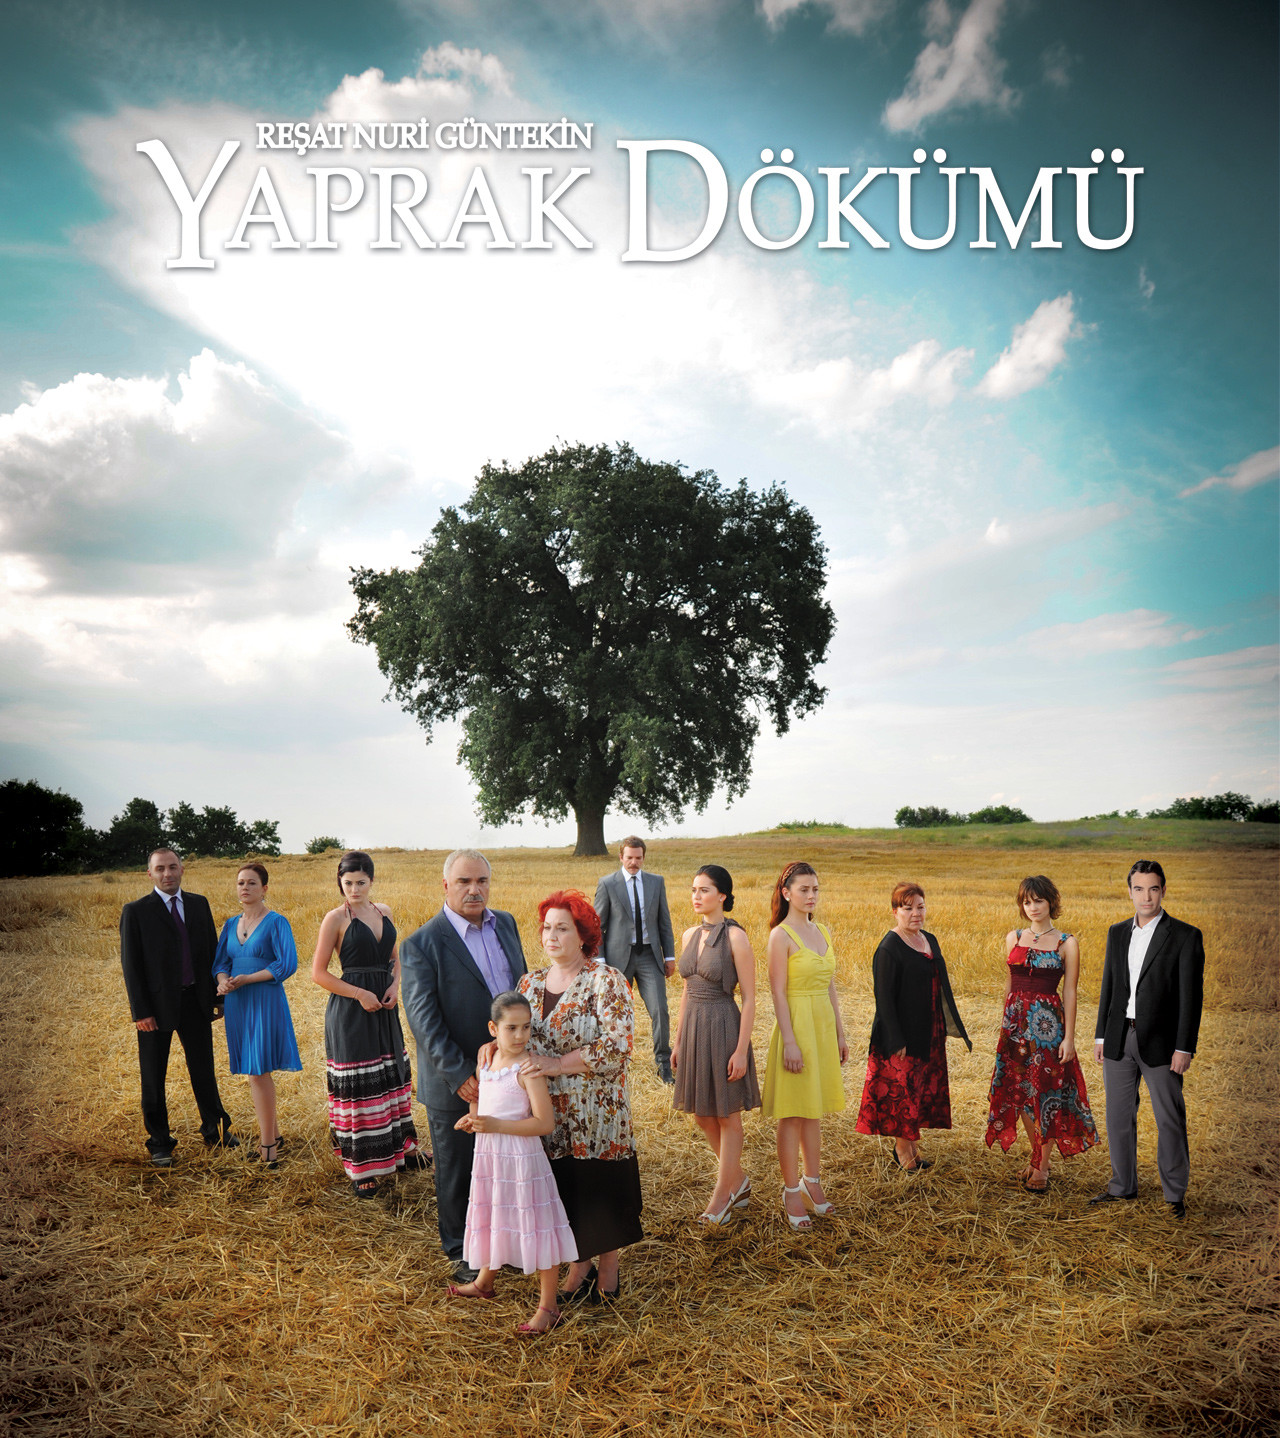 yaprak_dokumu_the_fall_of_leaves